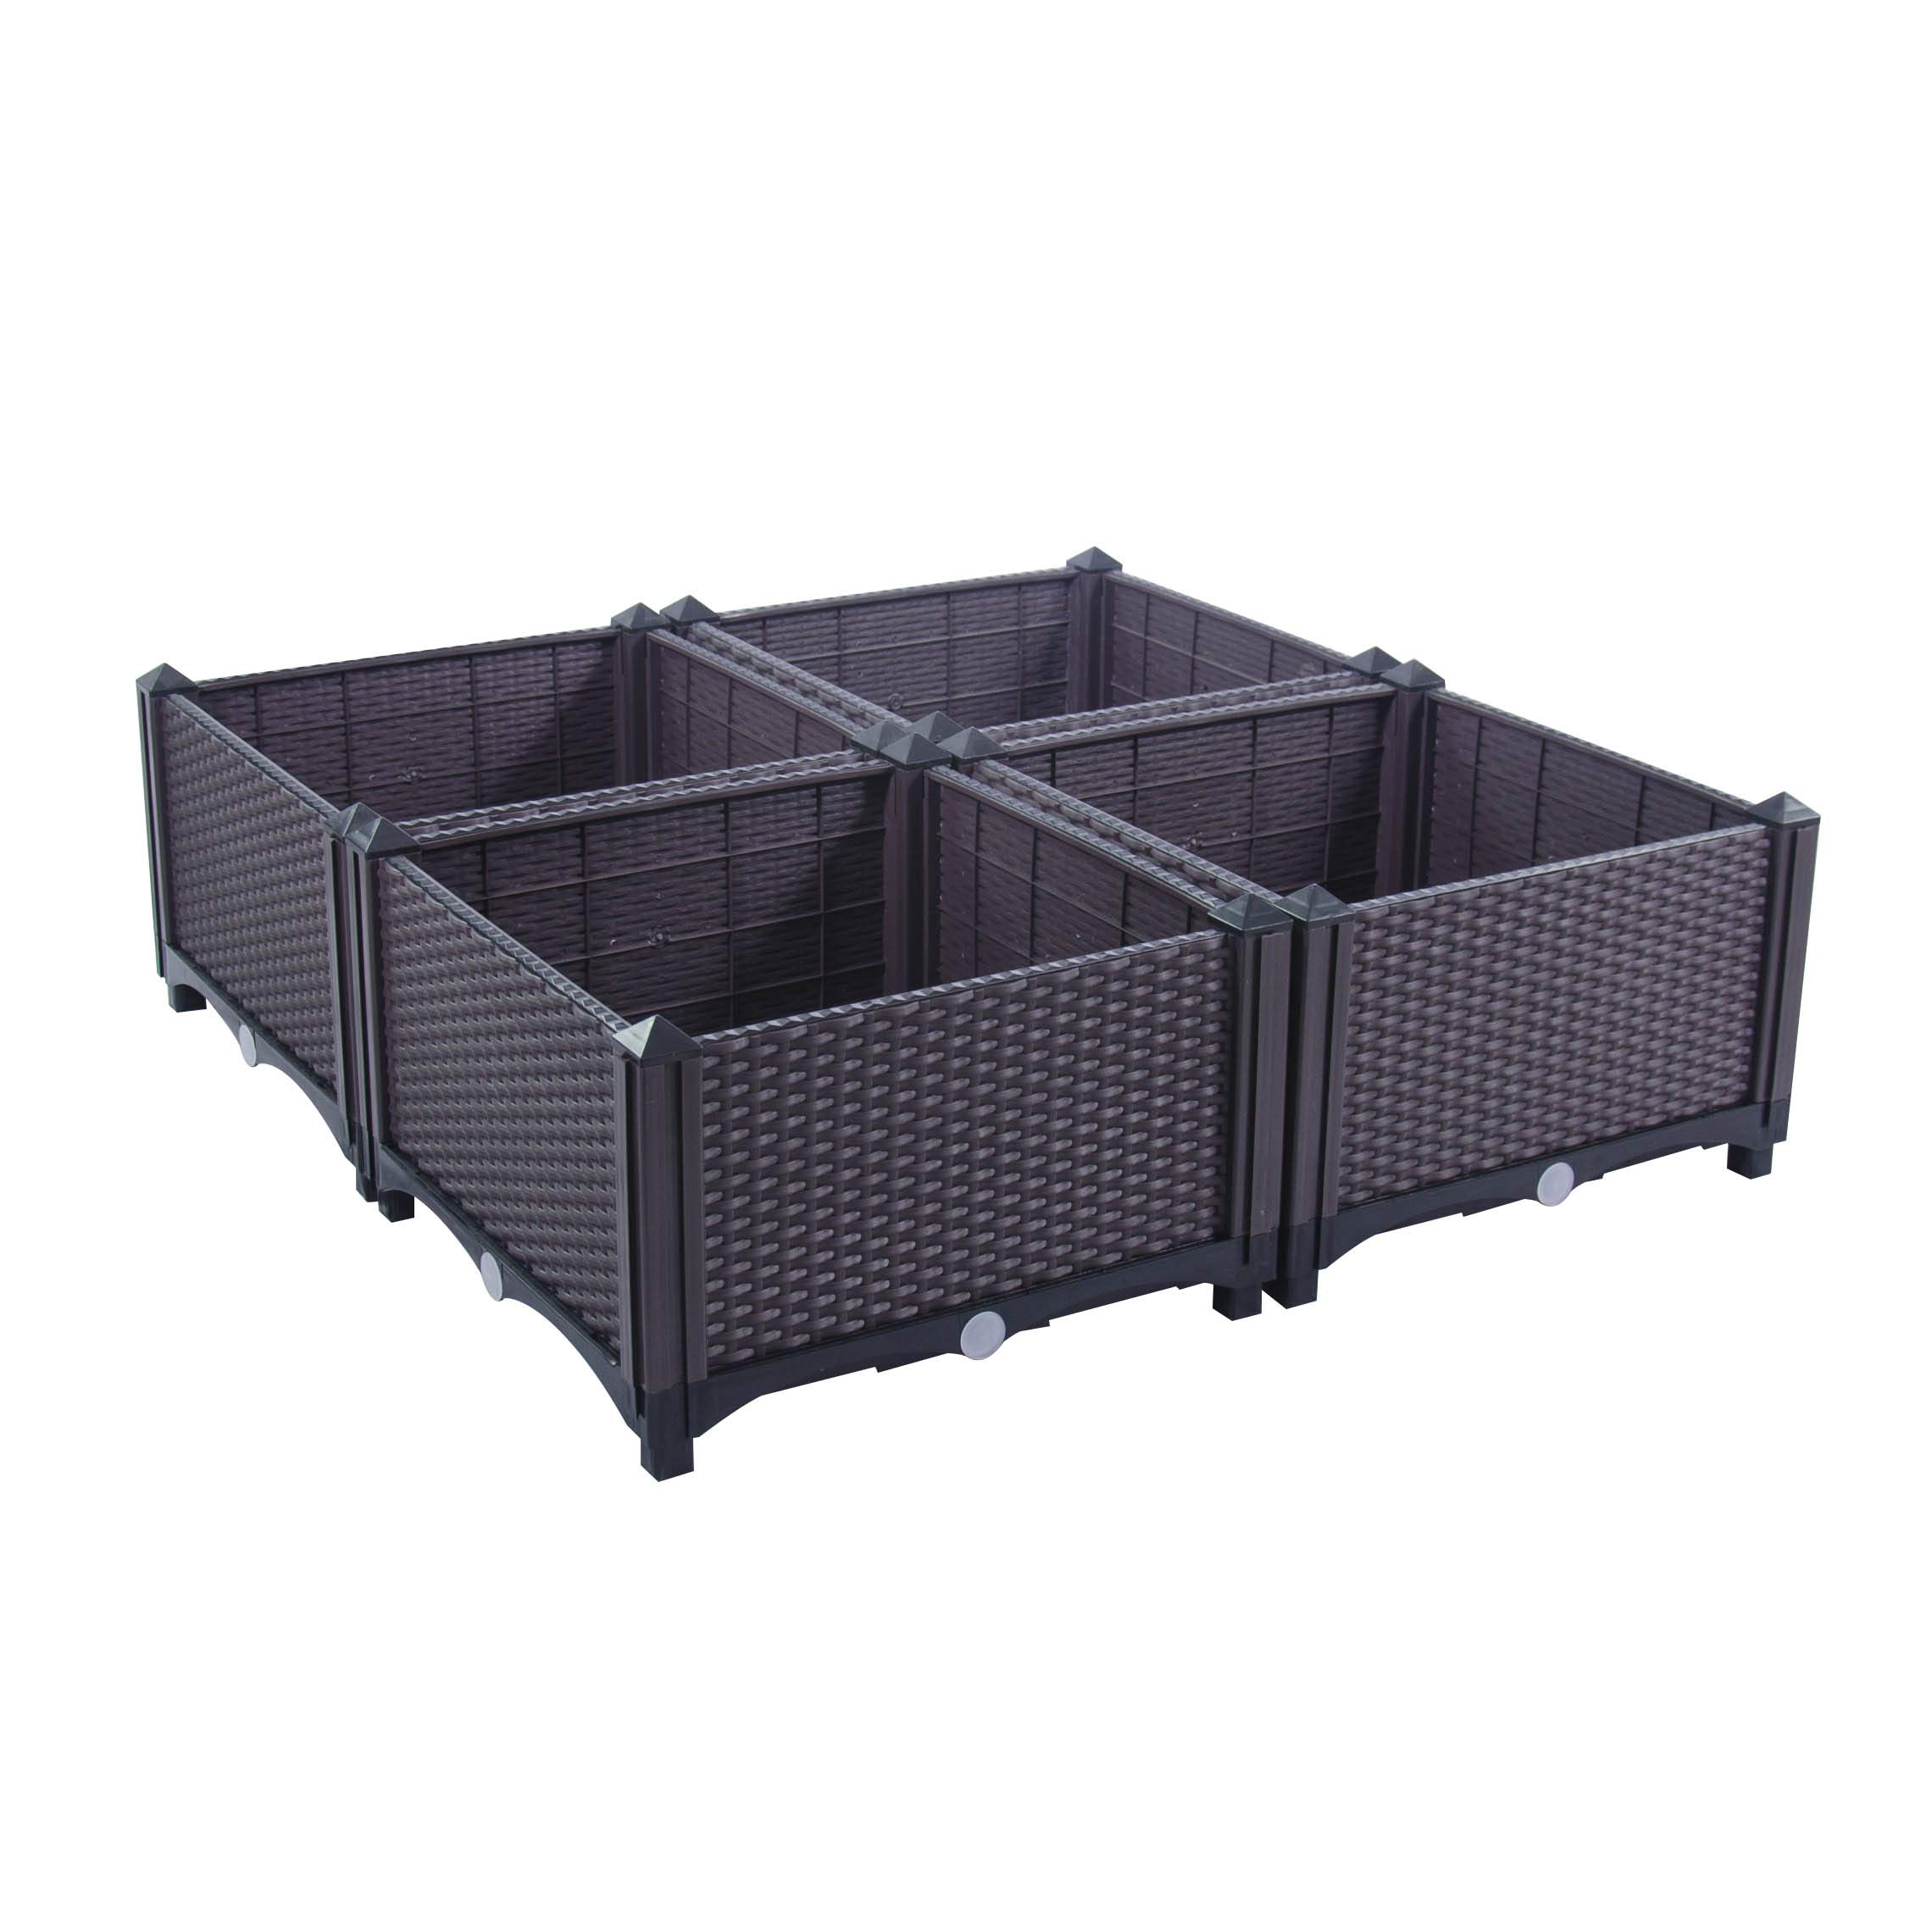 D'vine Dev Easy Grow Raised Garden Beds Planter(32 Inches Height / 32 Inches Wide) - Manual Drain - Indoor/Outdoor Large Polypropylene Resin Raised Garden